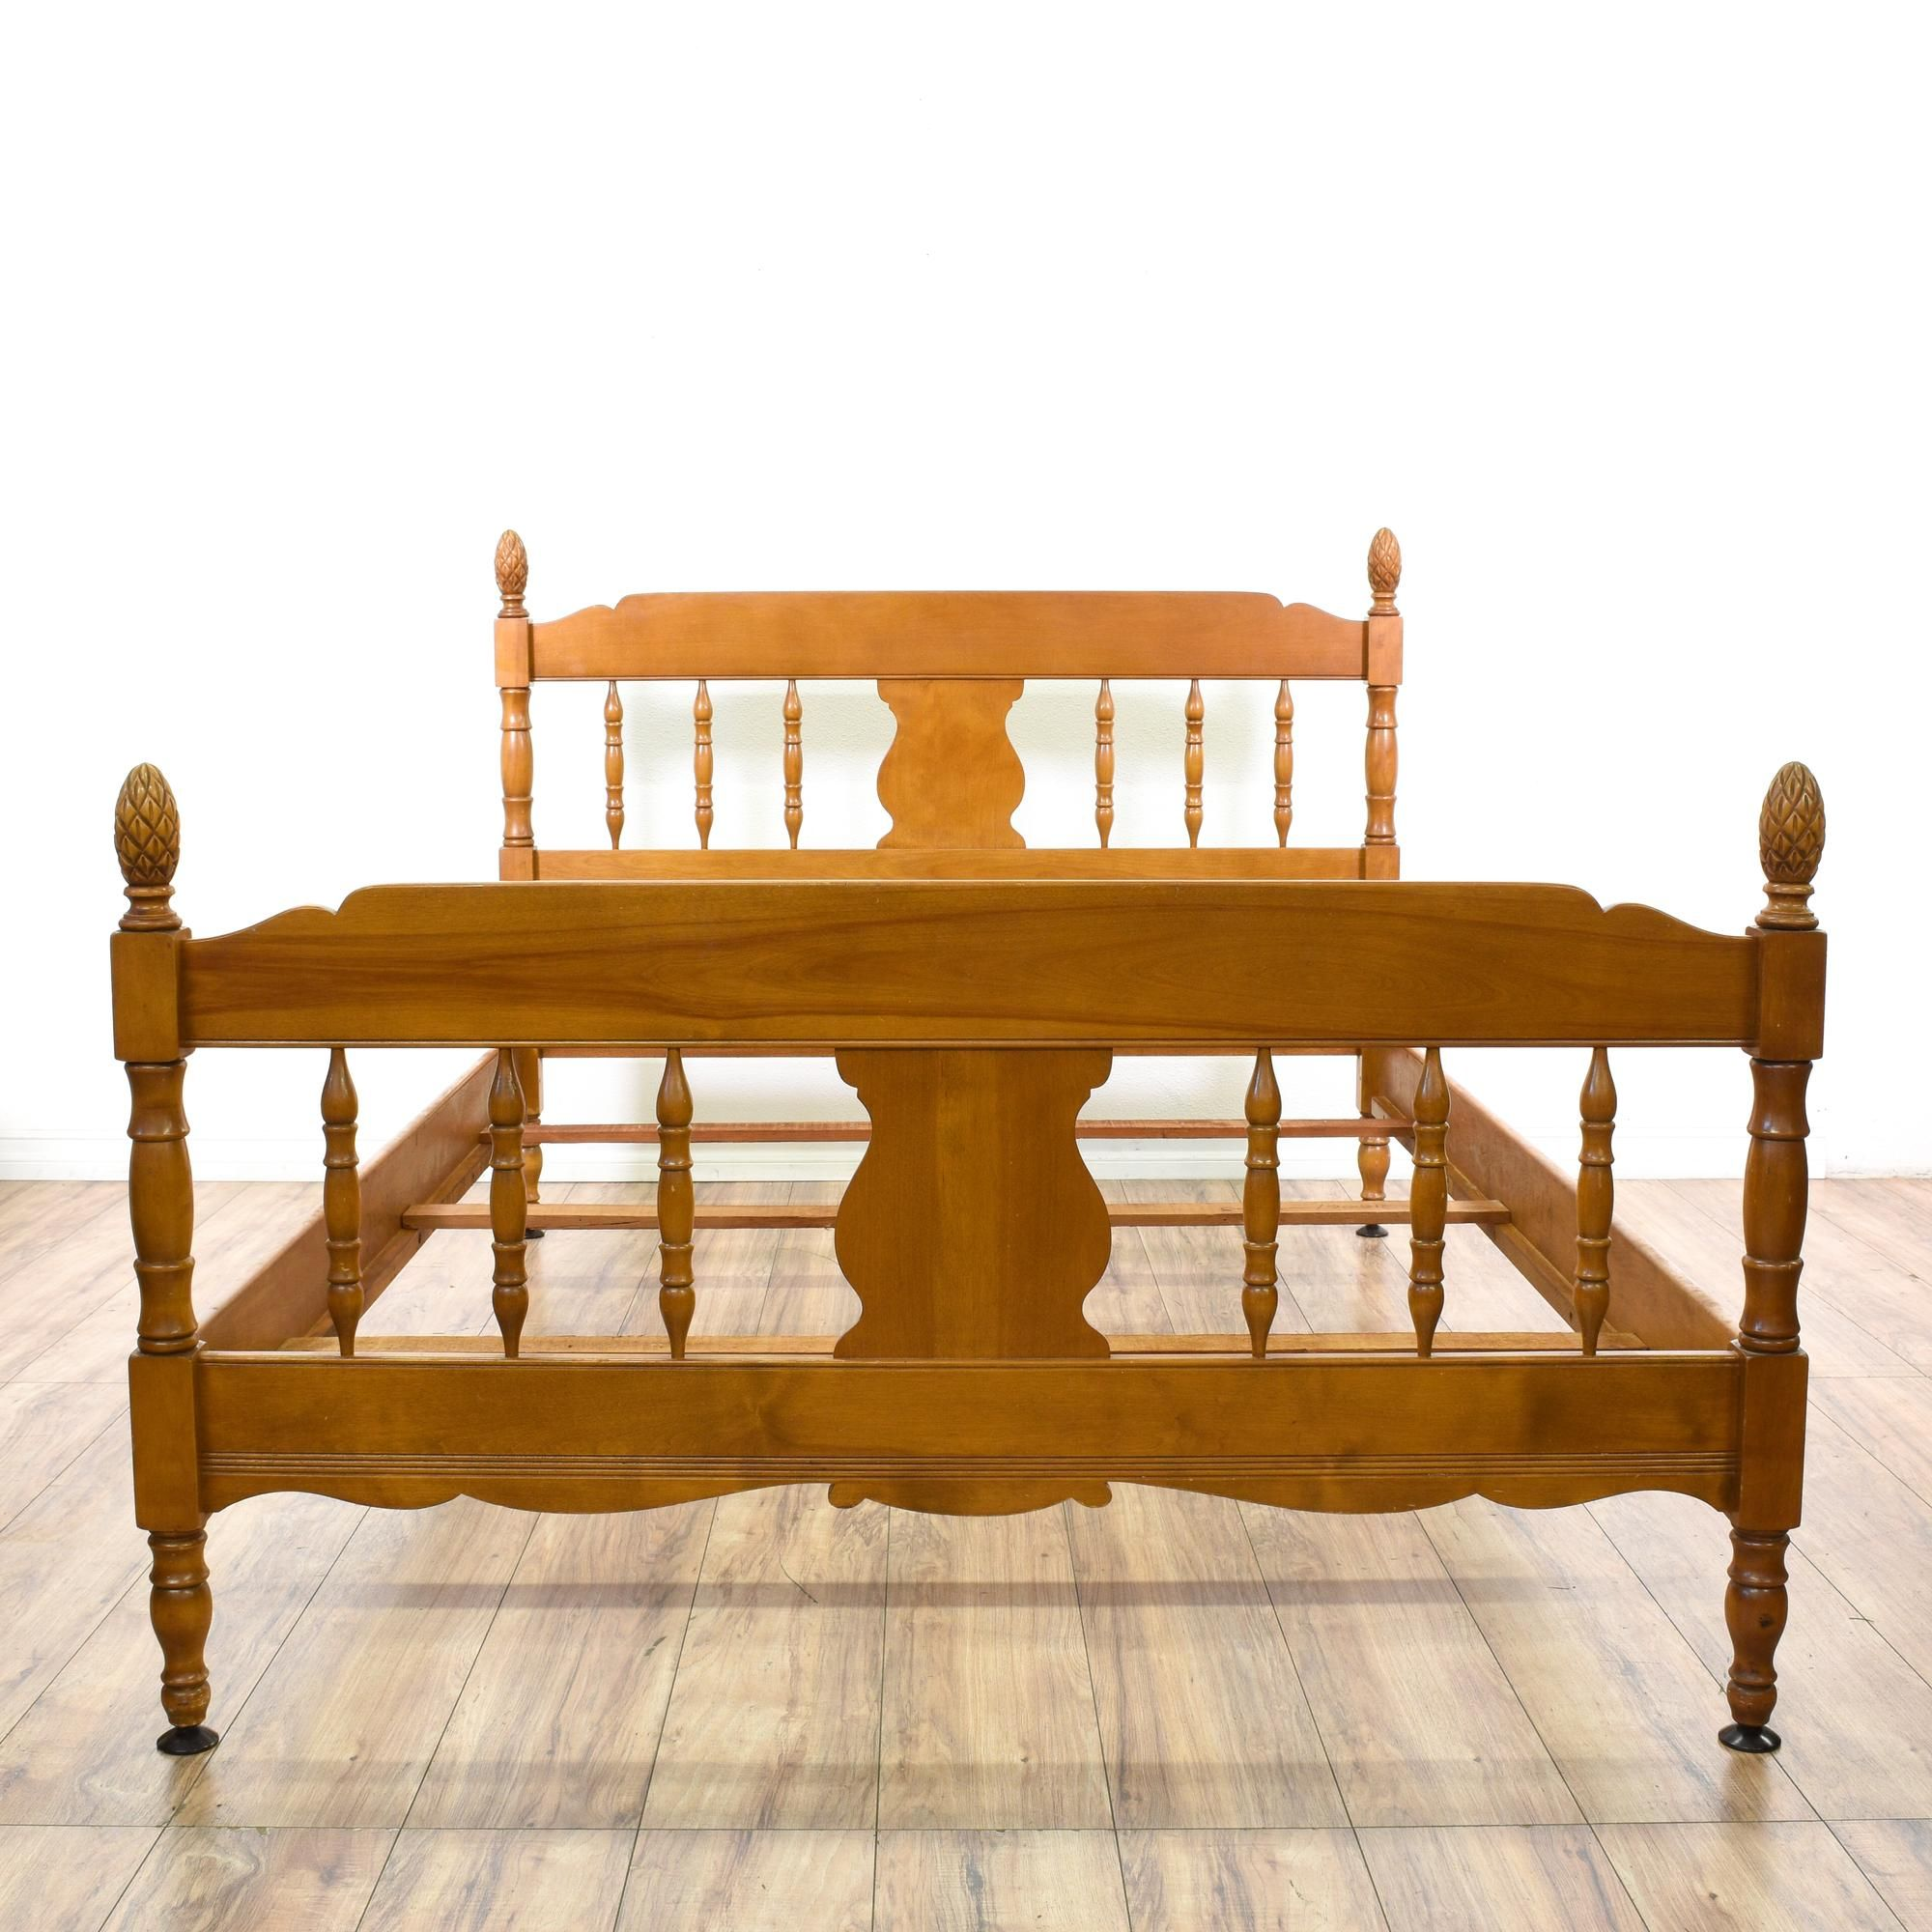 This Full Sized Bed Is Featured In A Solid Wood With A Glossy Maple Finish.  This Country Chic Style Bedframe Has Pine Cone Finials, Scalloped Trim, ...